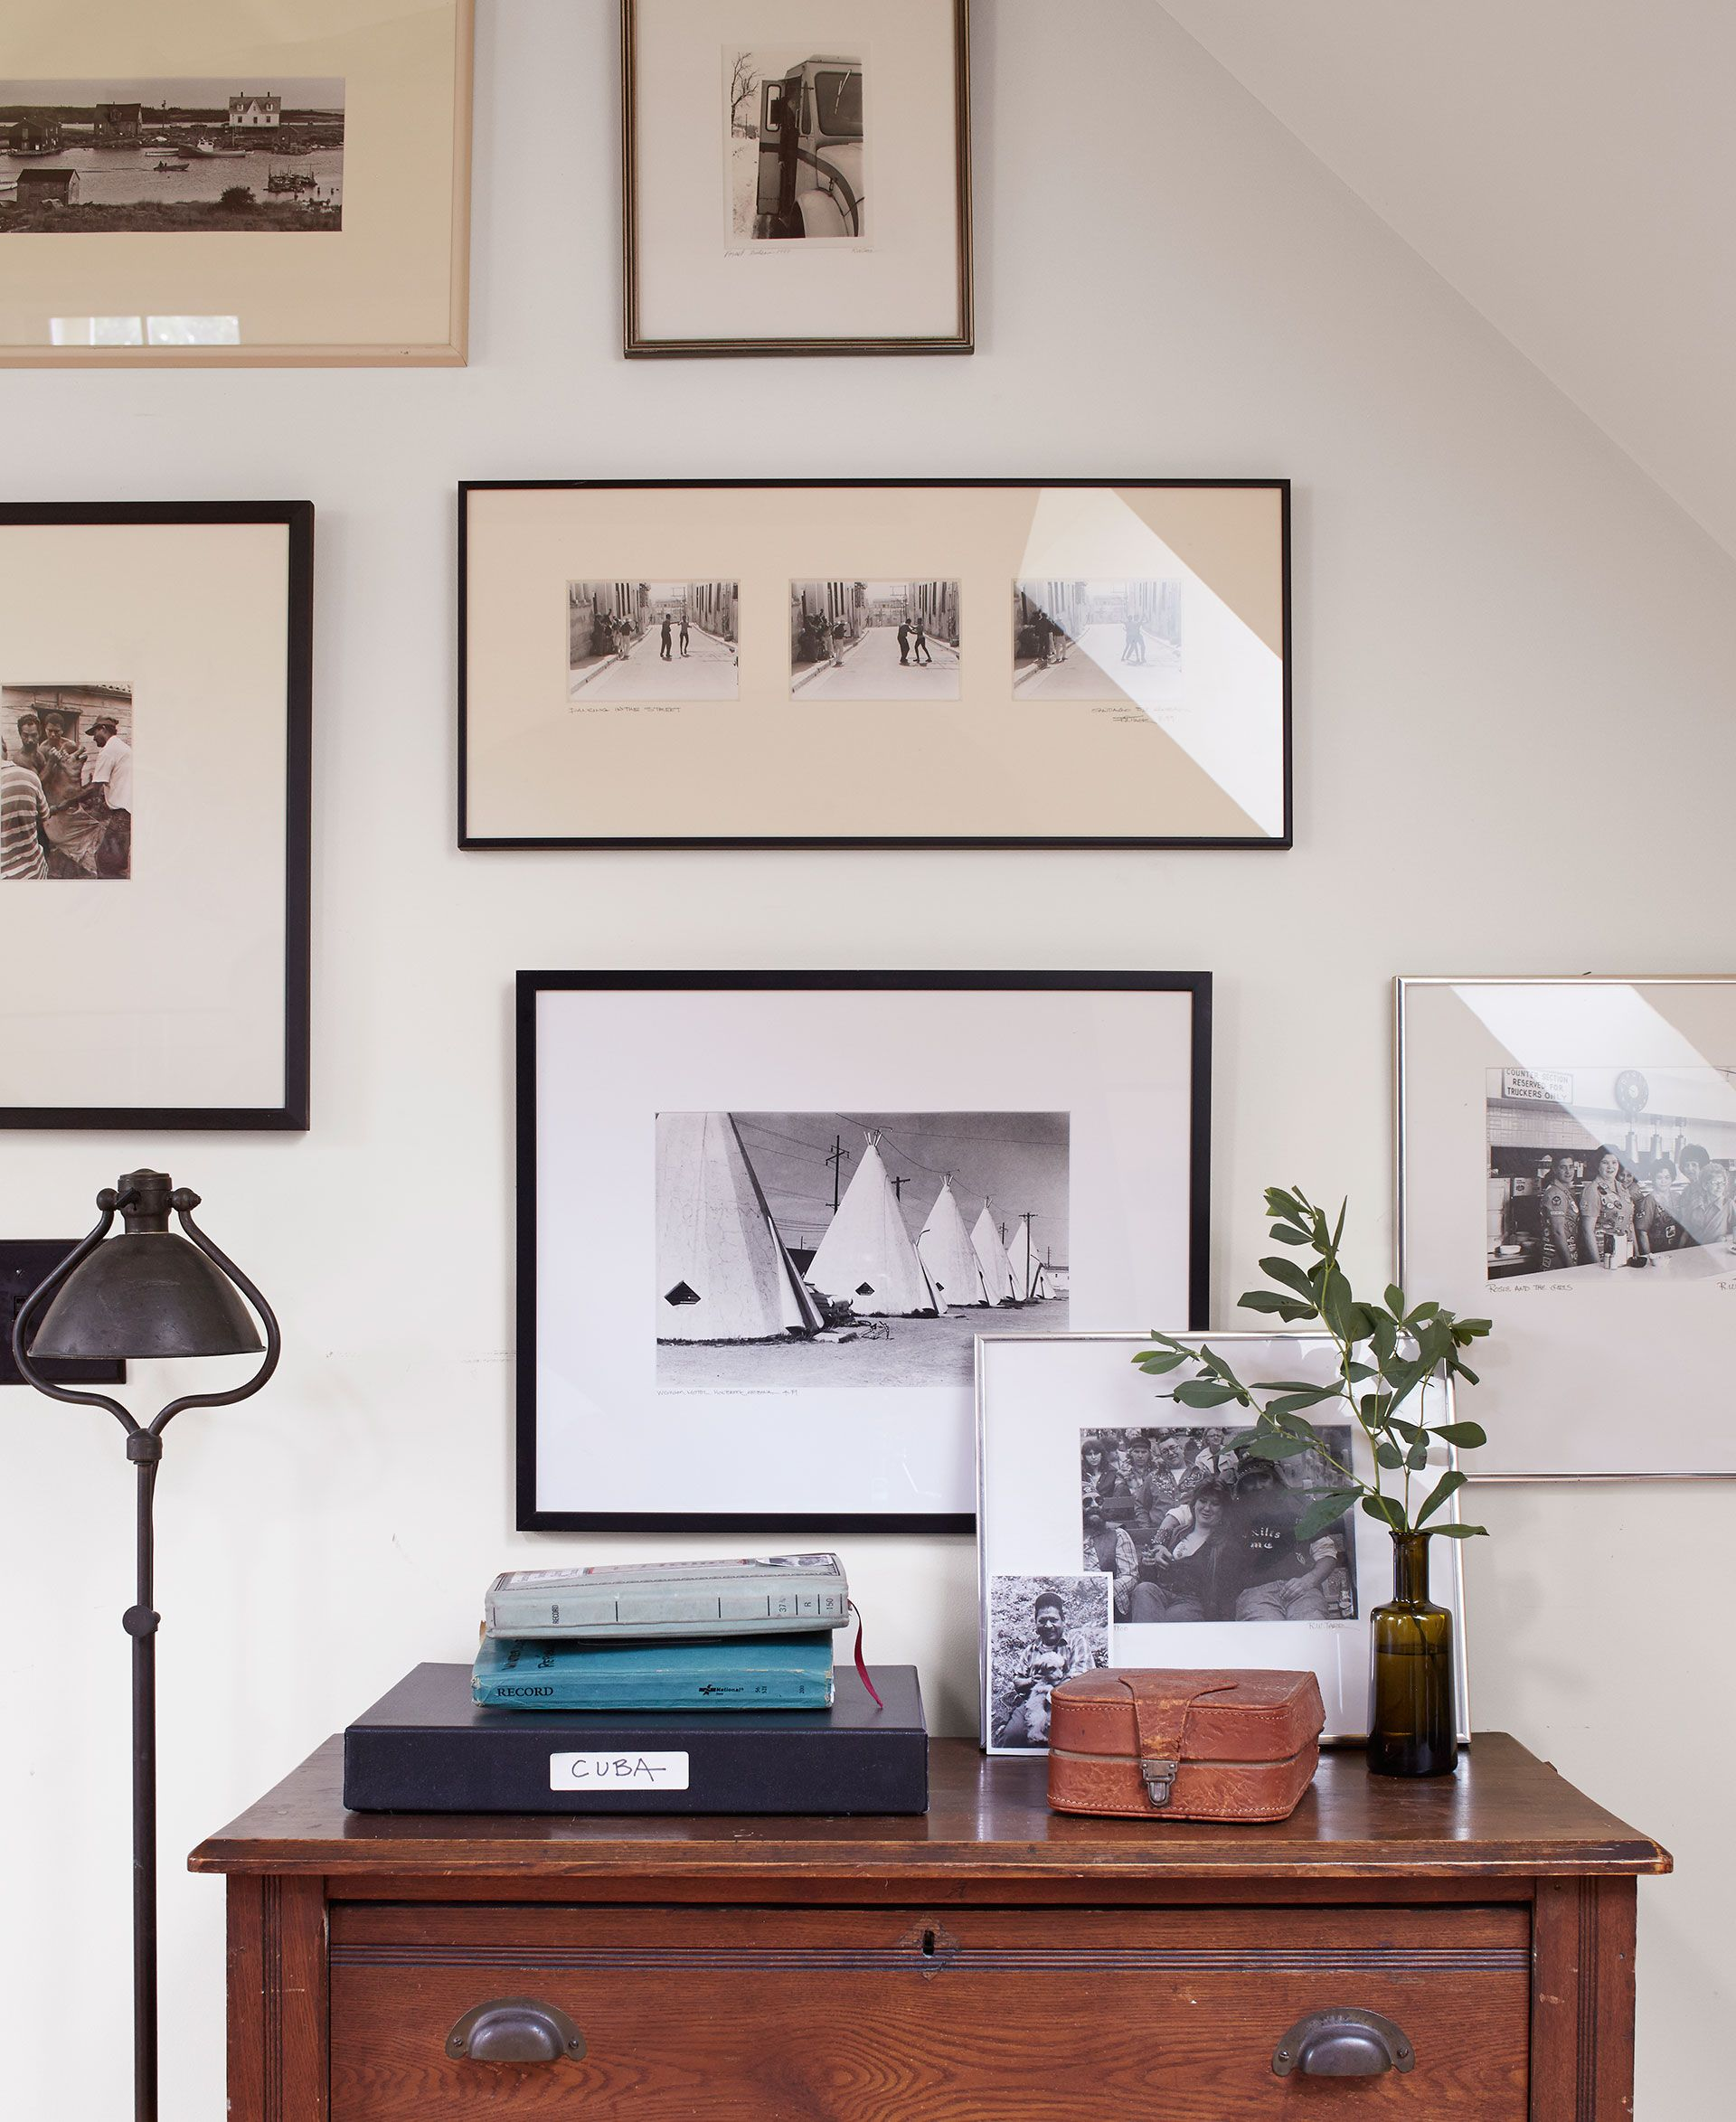 How to Hang Pictures - Creative Ways to Hang Art